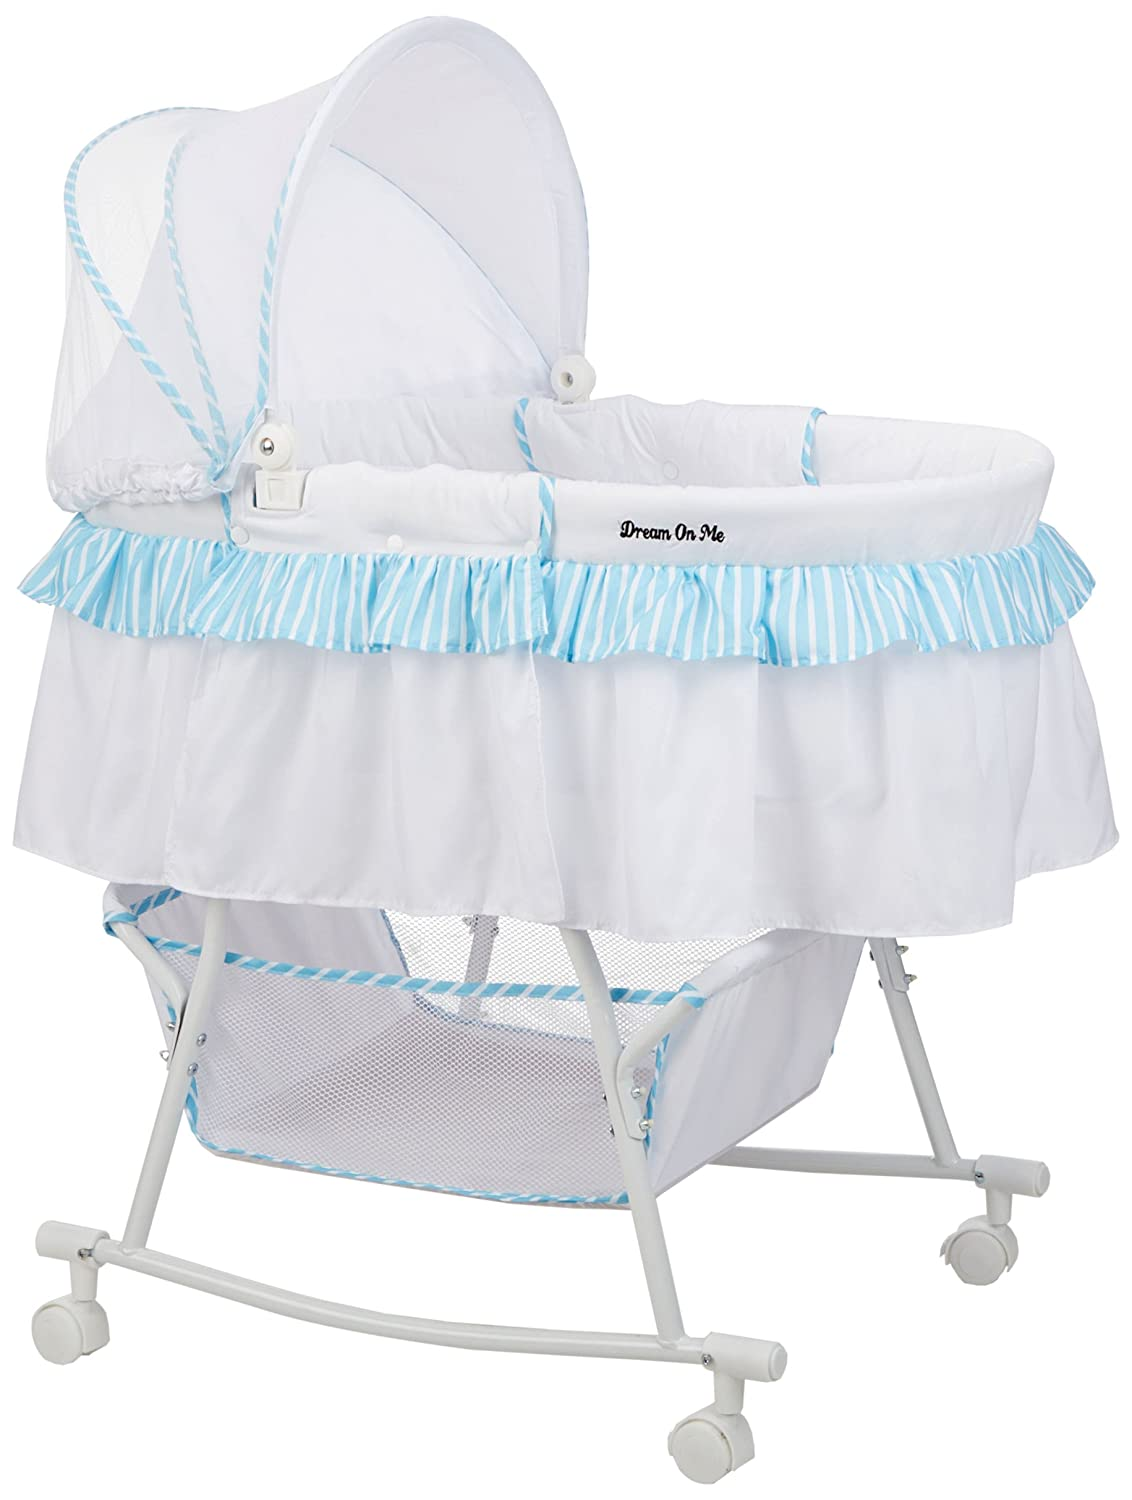 Dream on Me Lacy Portable 2-in-1 Bassinet 442-P